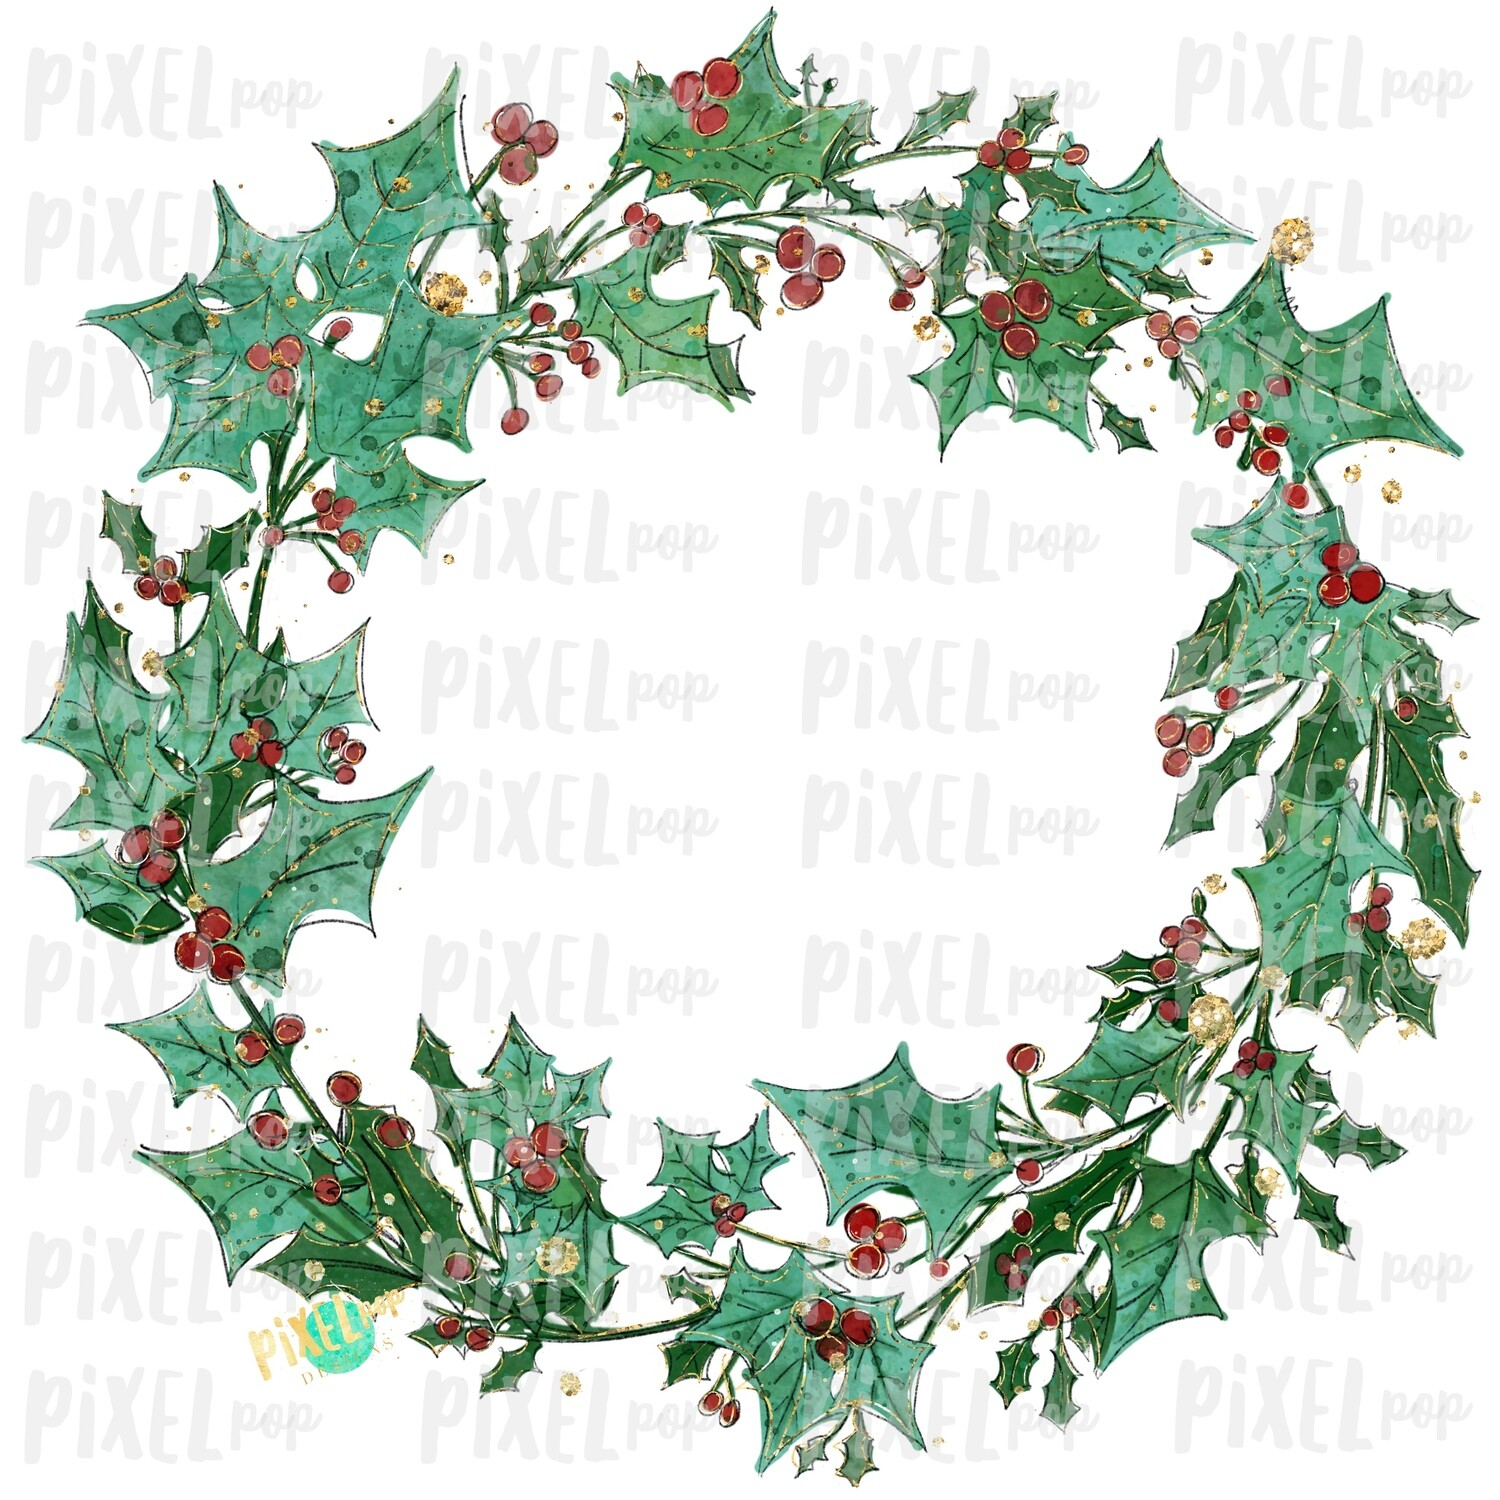 Glitter Holly Wreath Blank Watercolor Christmas Sublimation PNG | Hand Drawn Painted | Sublimation | Digital Download | Printable Artwork | Art